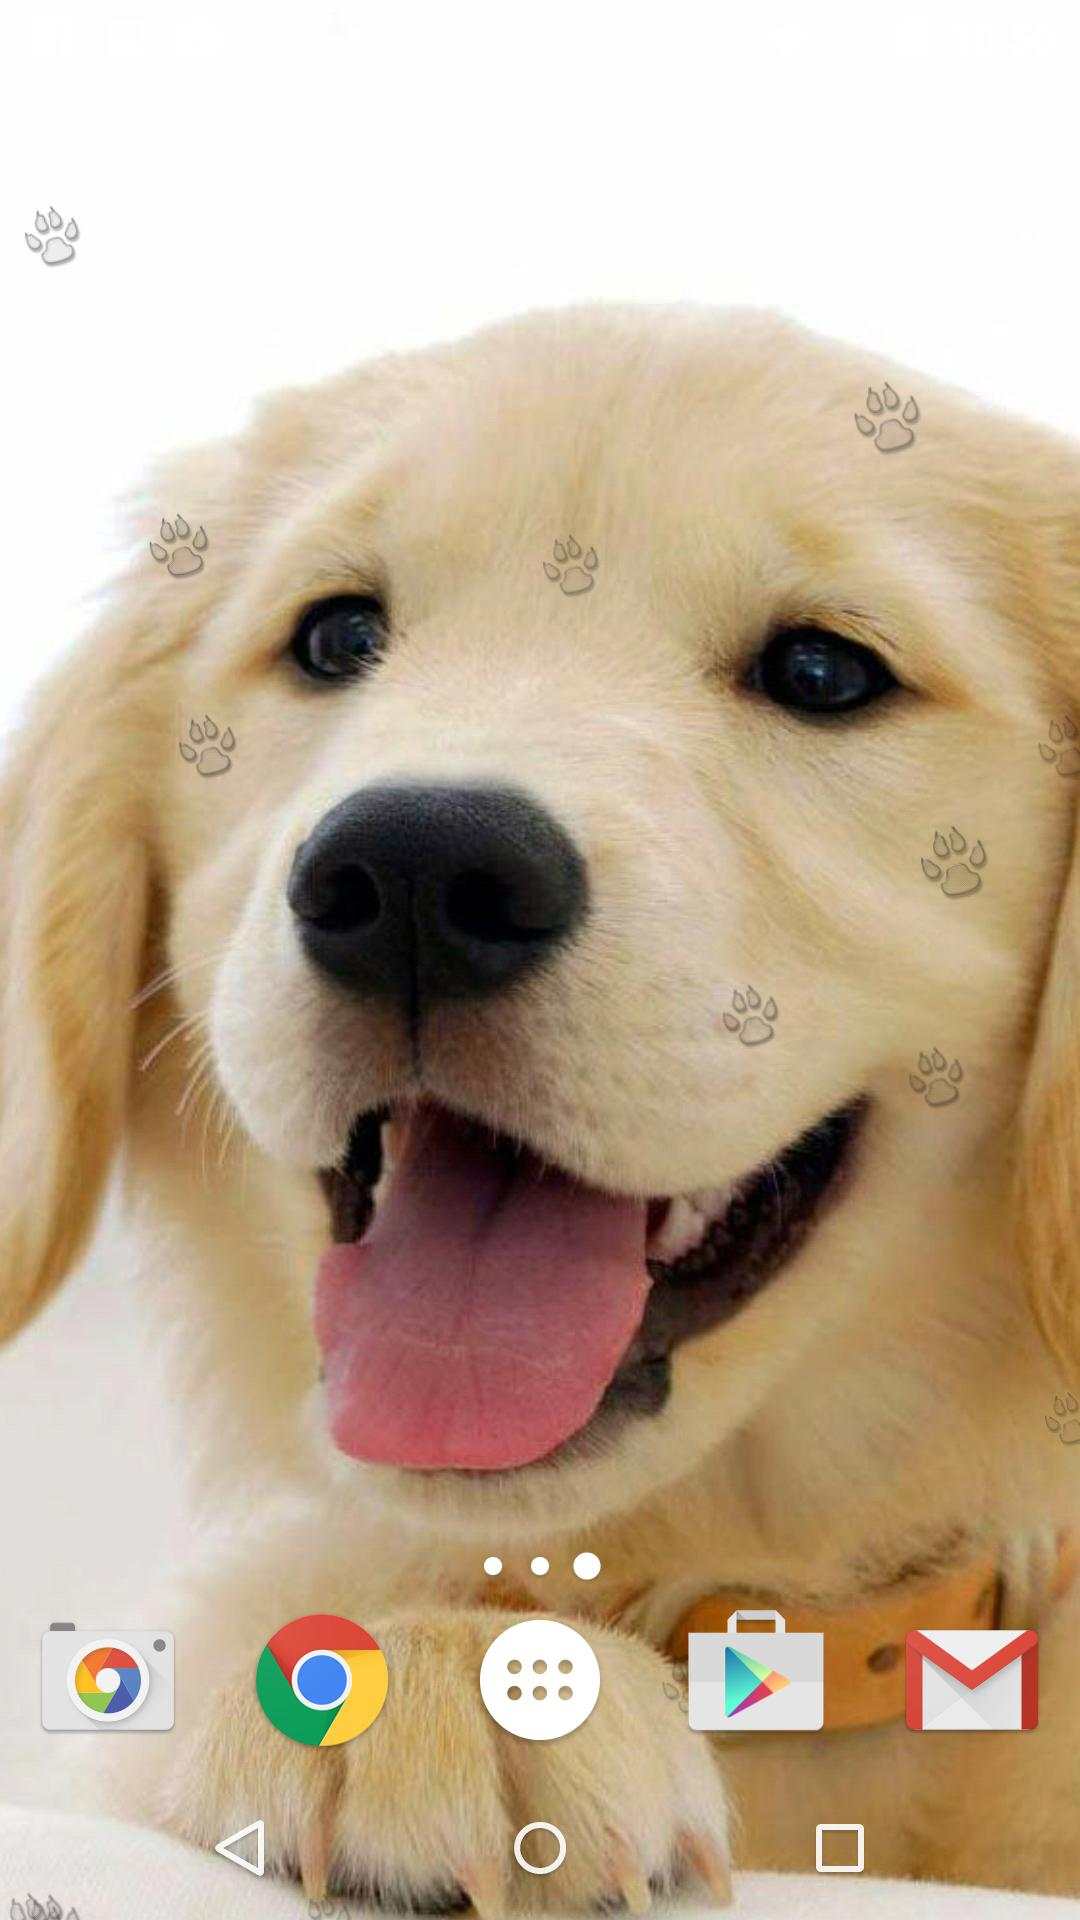 Cute Puppies Live Wallpaper For Android Apk Download